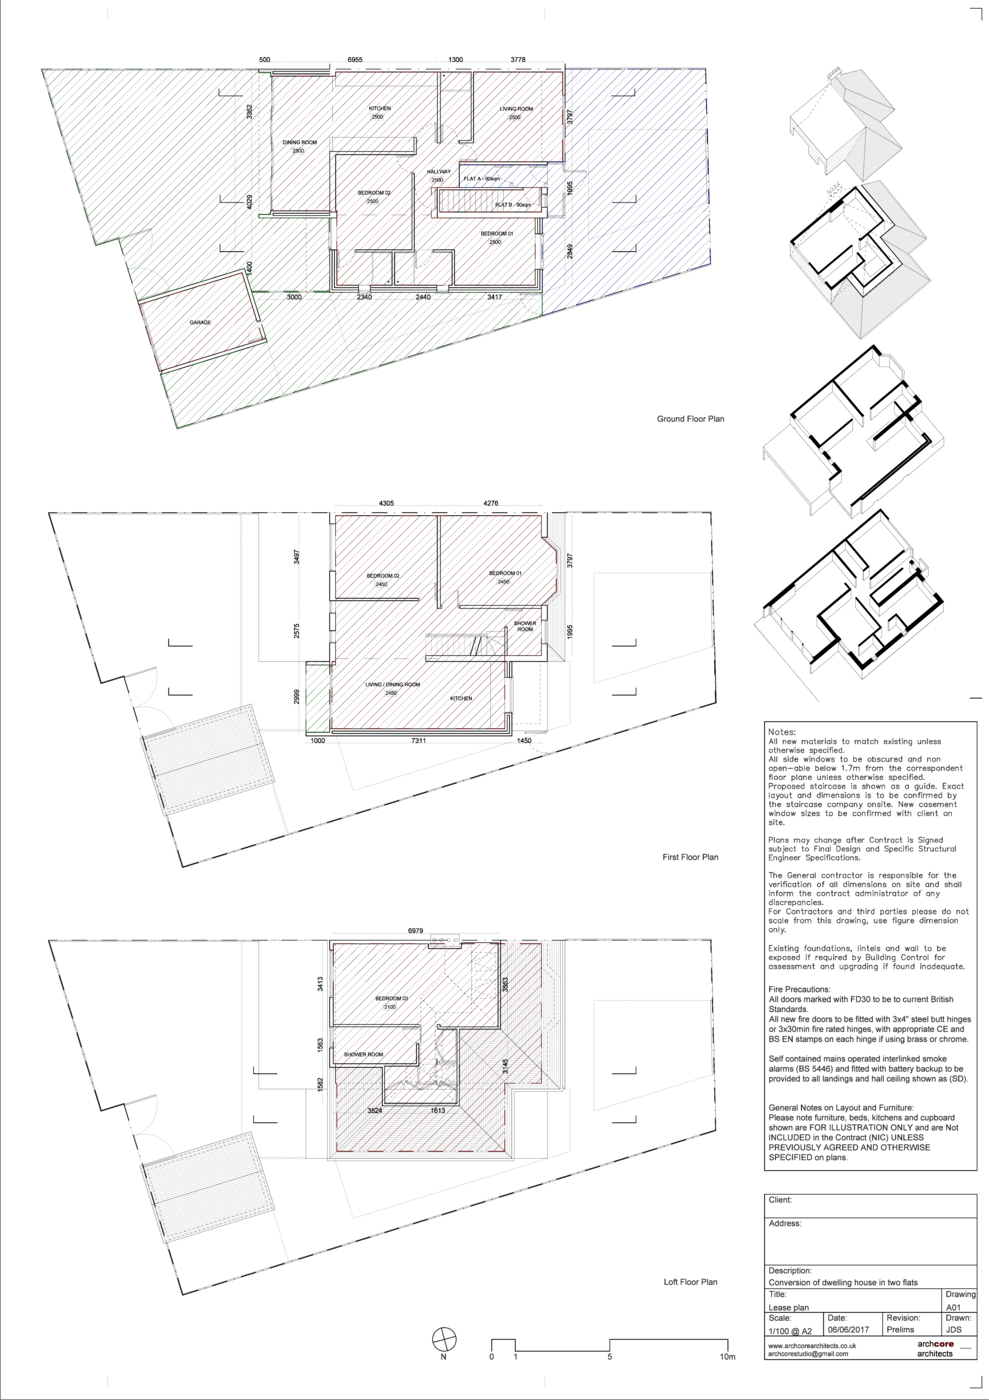 Static drawing architectural. Archcore architects lease plans